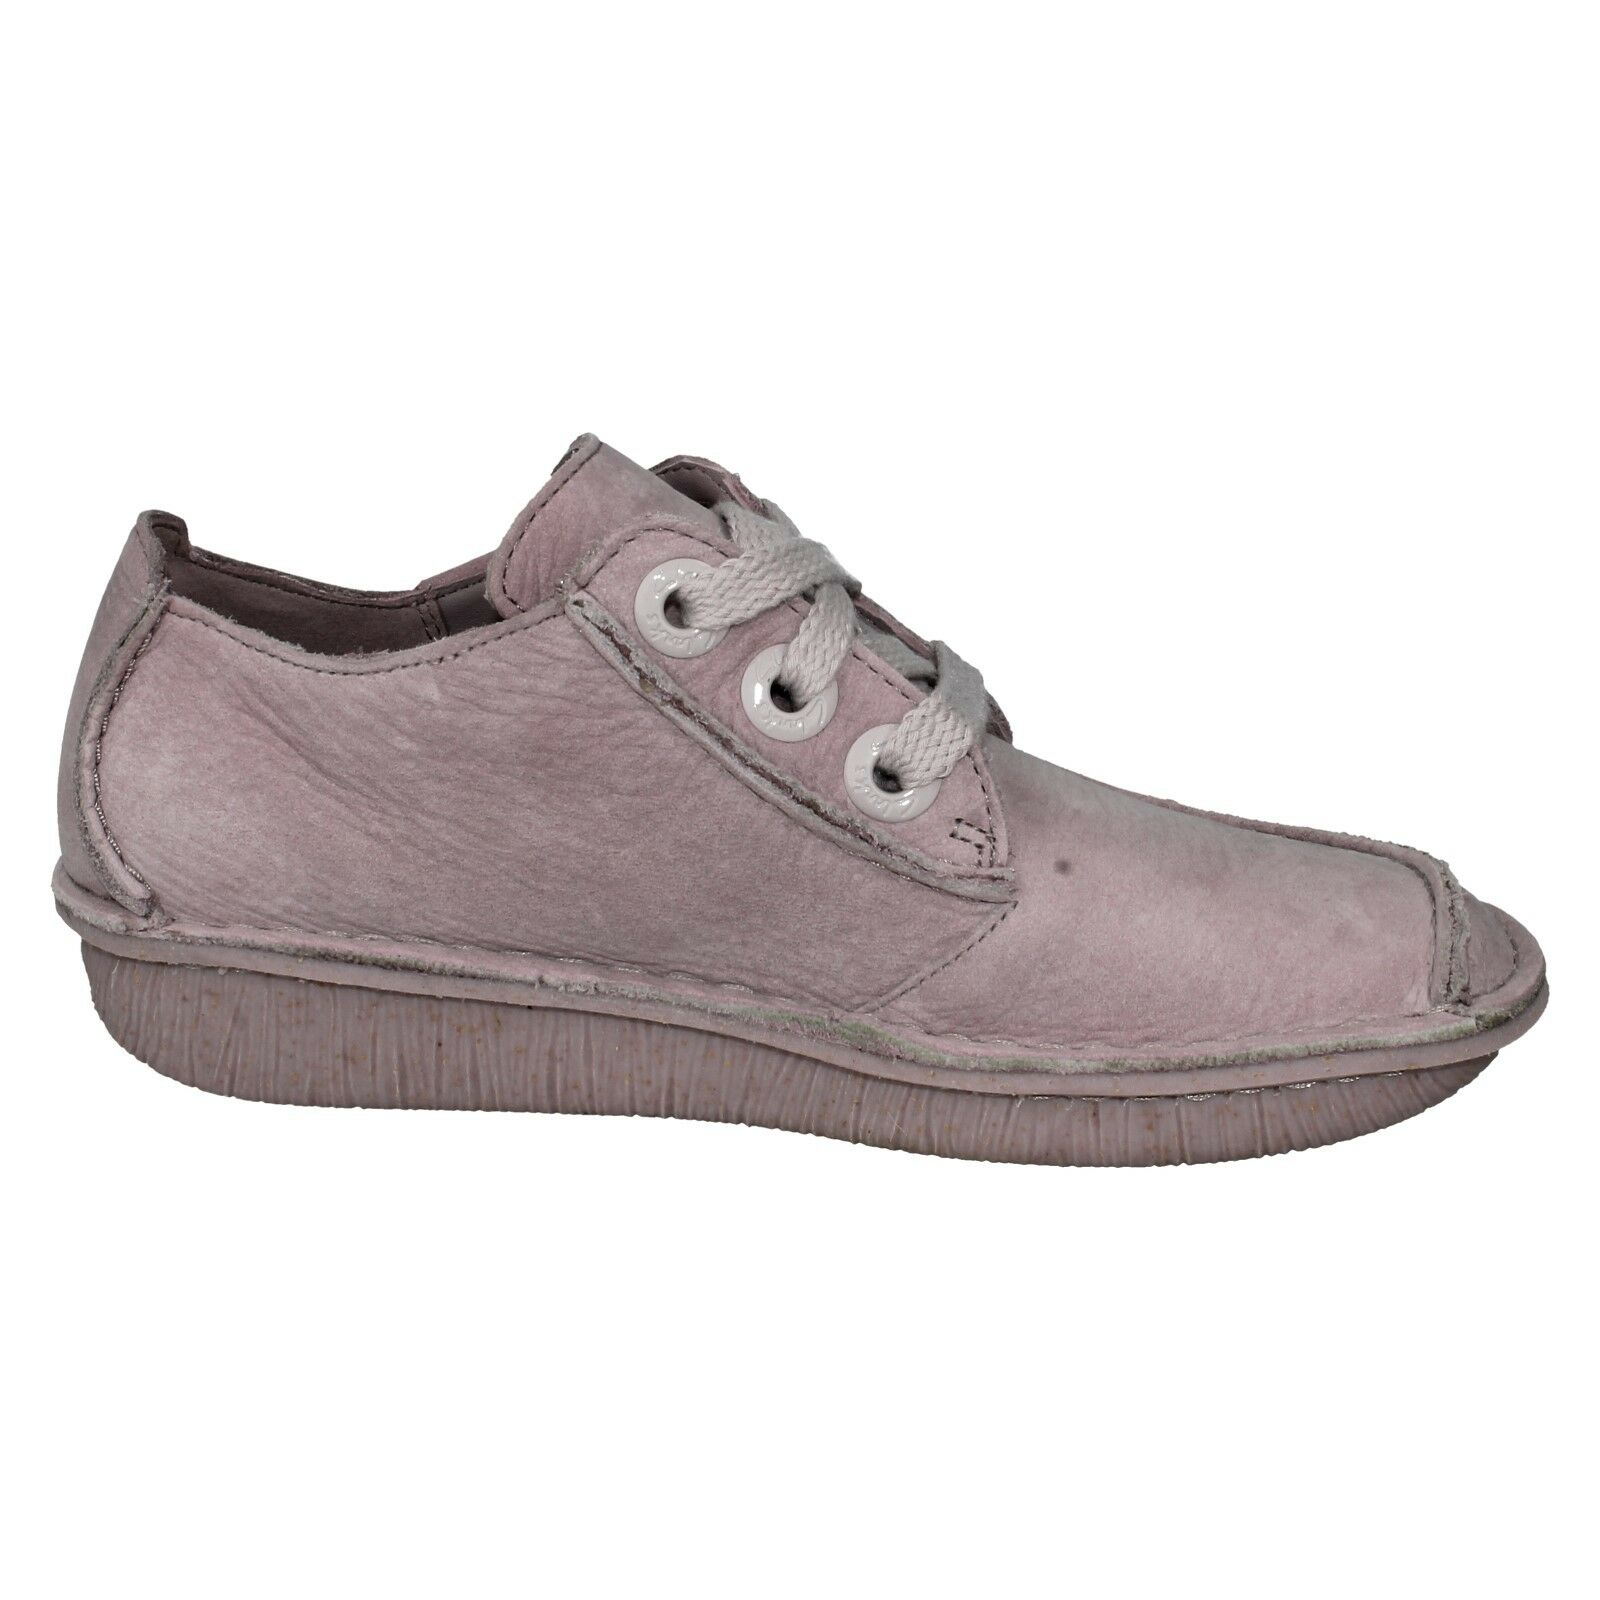 FUNNY DREAM 1 LADIES UP CLARKS UNSTRUCTUROT LEATHER FLAT LACE UP LADIES TROUSER Schuhe 0c9dd3